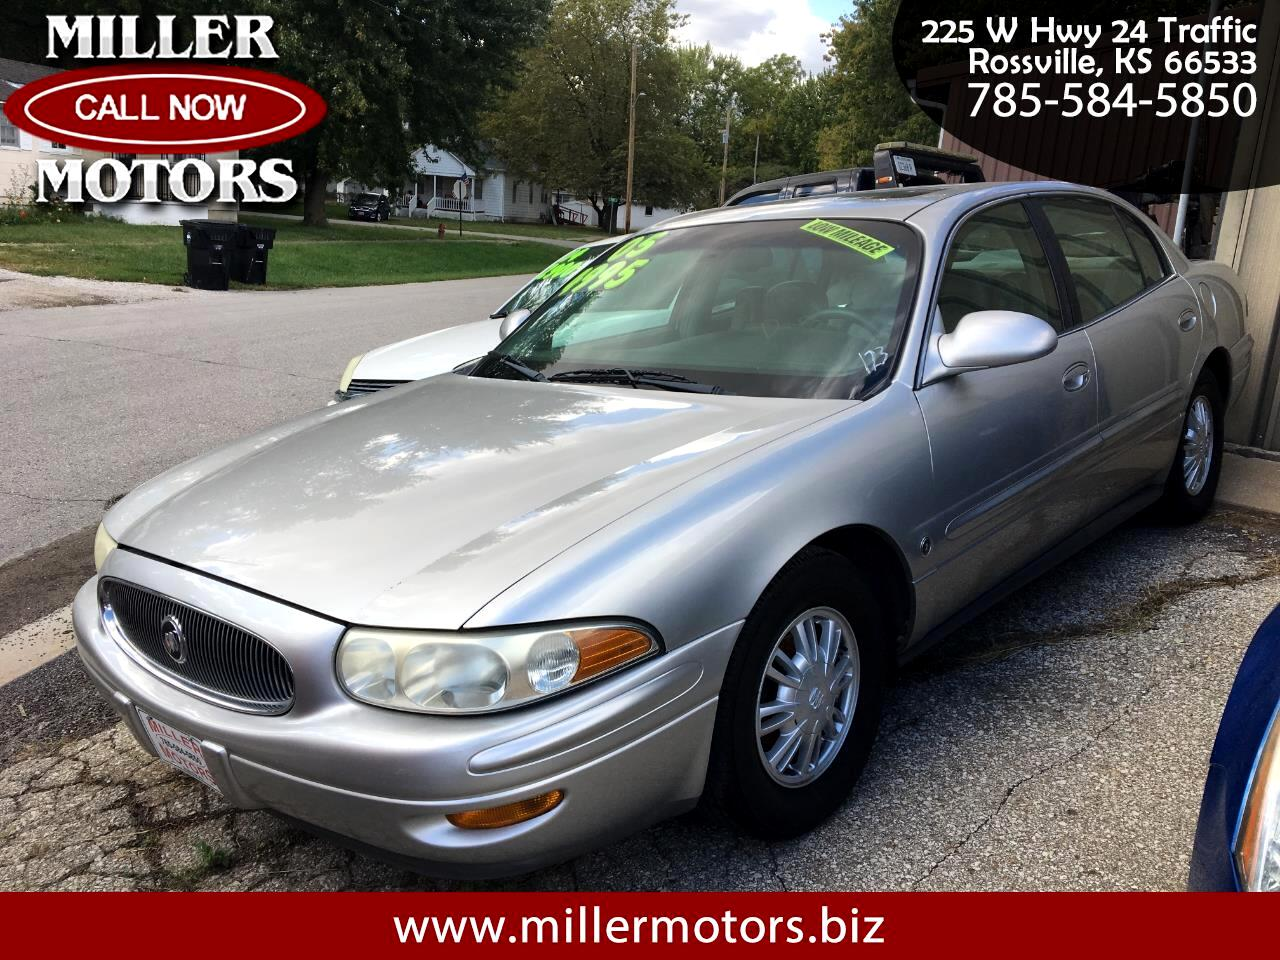 2005 Buick LeSabre 4dr Sdn Limited